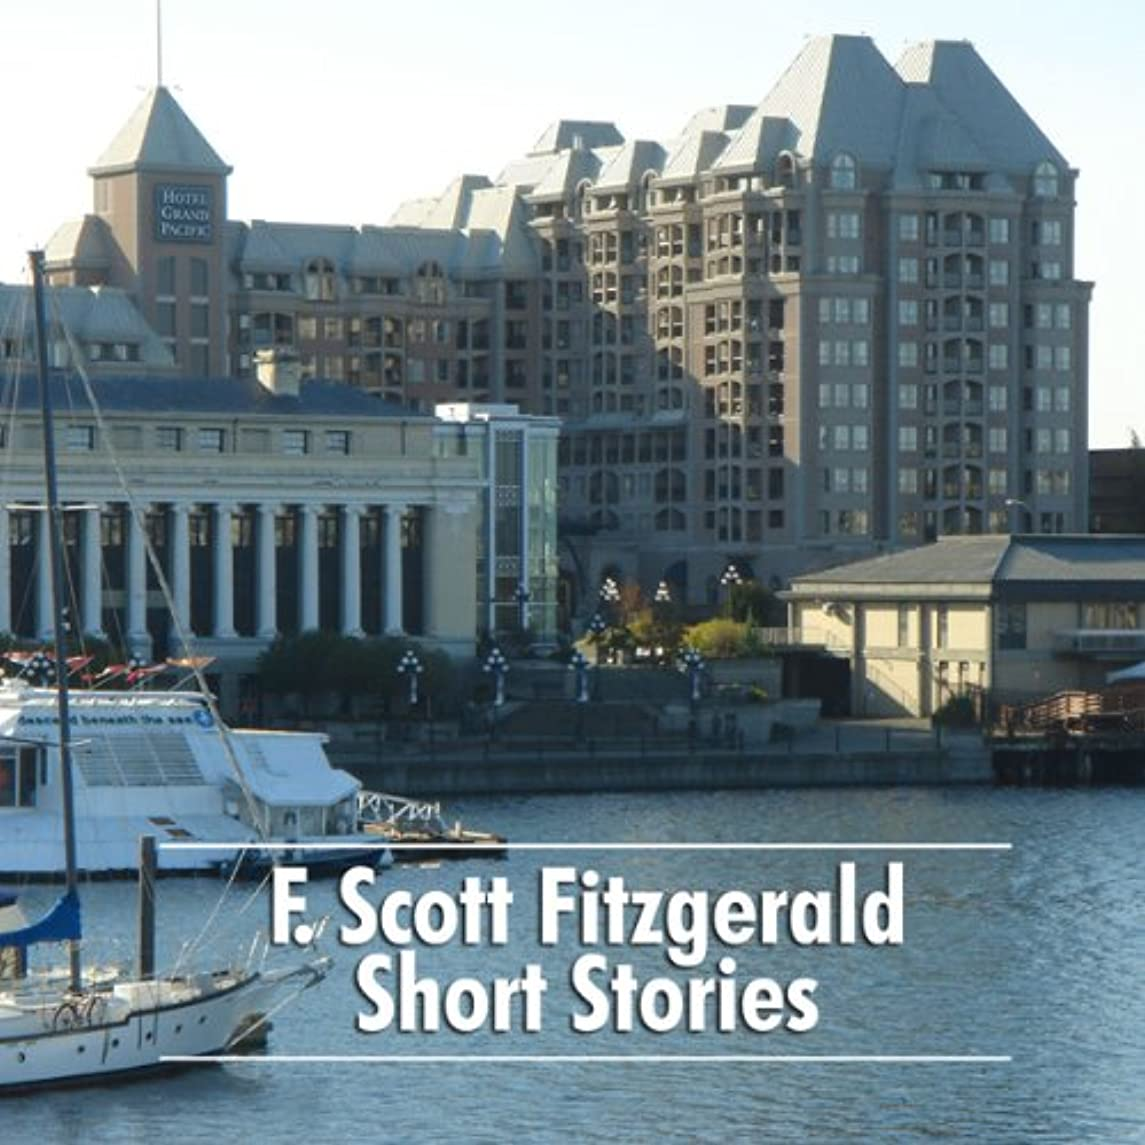 F. Scott Fitzgerald Short Stories: 3 Early Short Stories & Famous Quotations